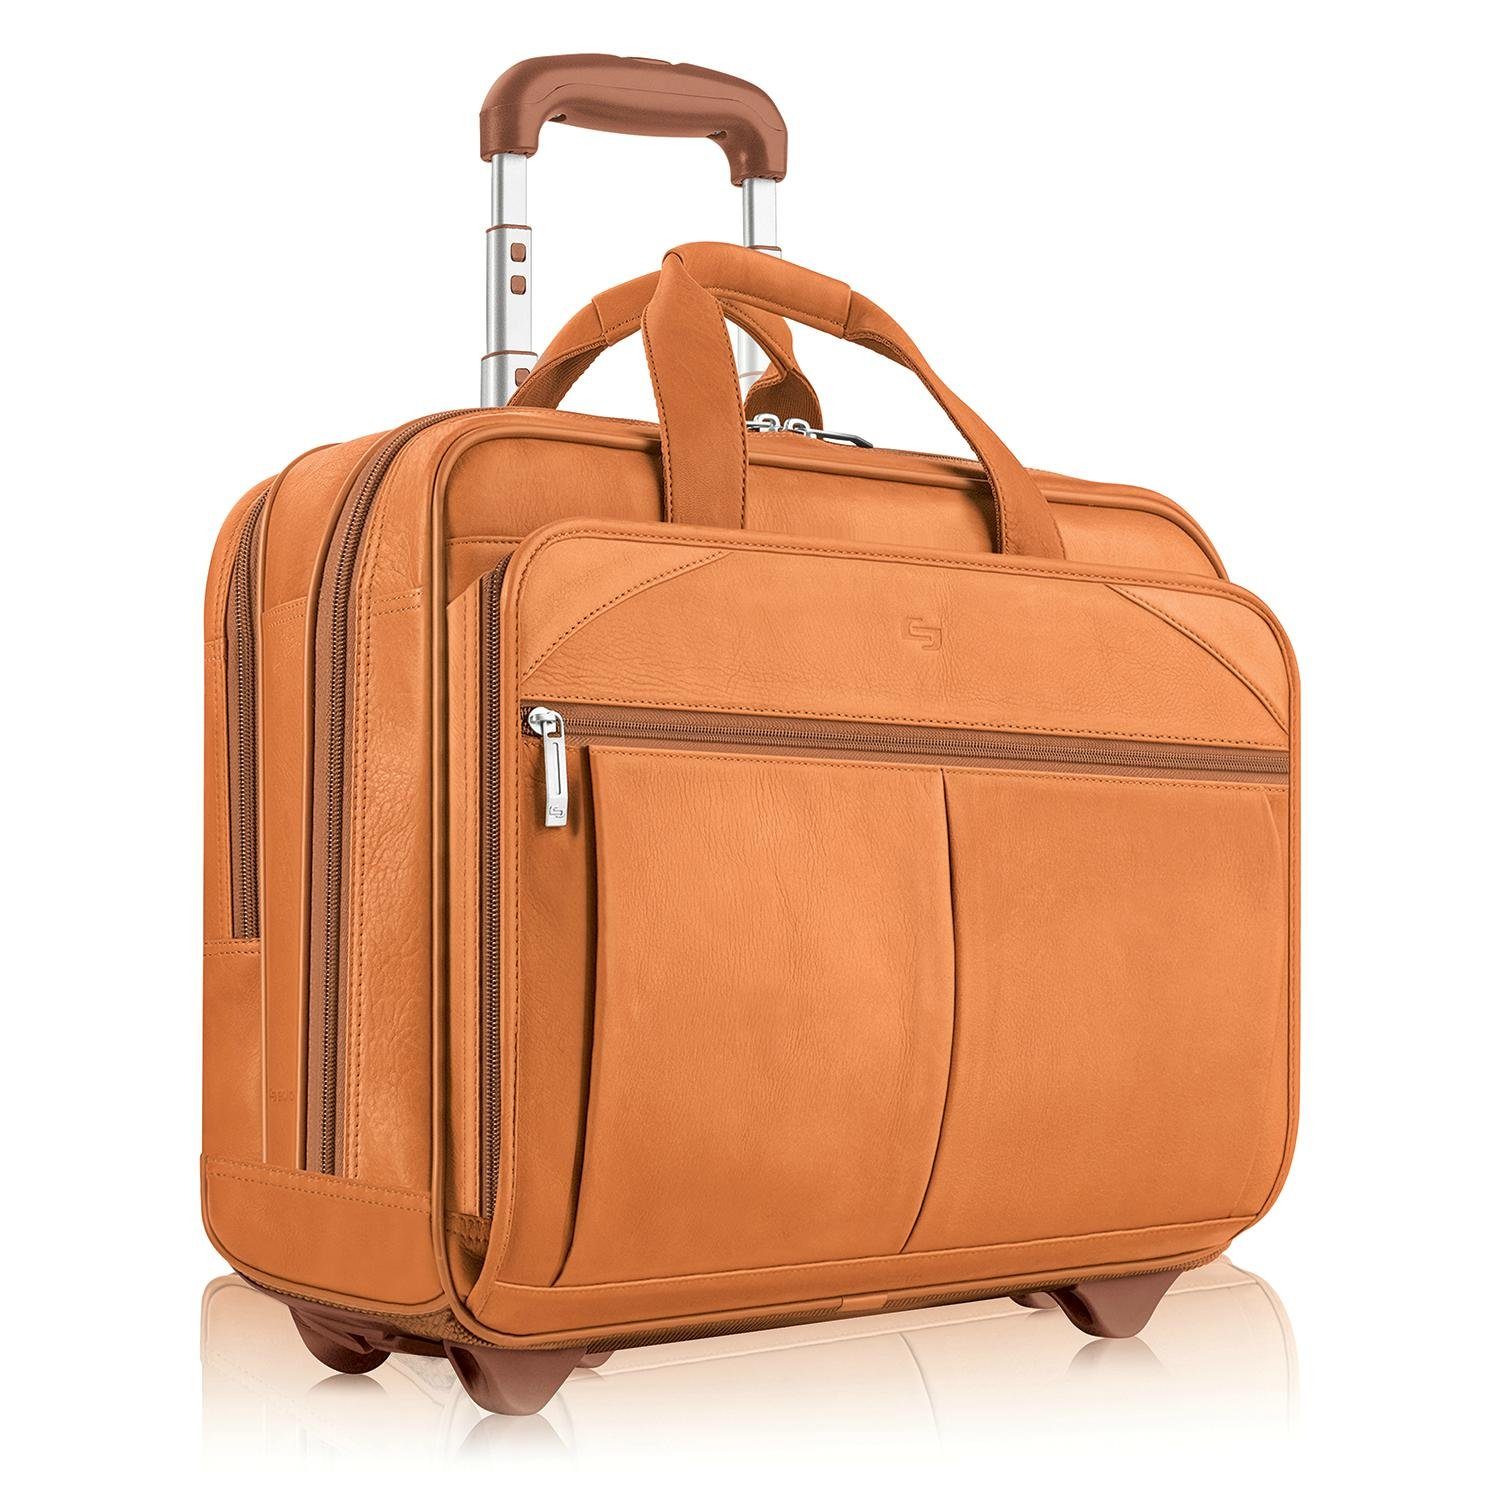 "Solo Classic Carrying Case [roller] For 15.6"" Notebook - Tan - Leather - Checkpoint Friendly - Shoulder Strap, Handle - 13"" Height X 17"" Width X 6.3"" Depth (cqr107-4_25)"